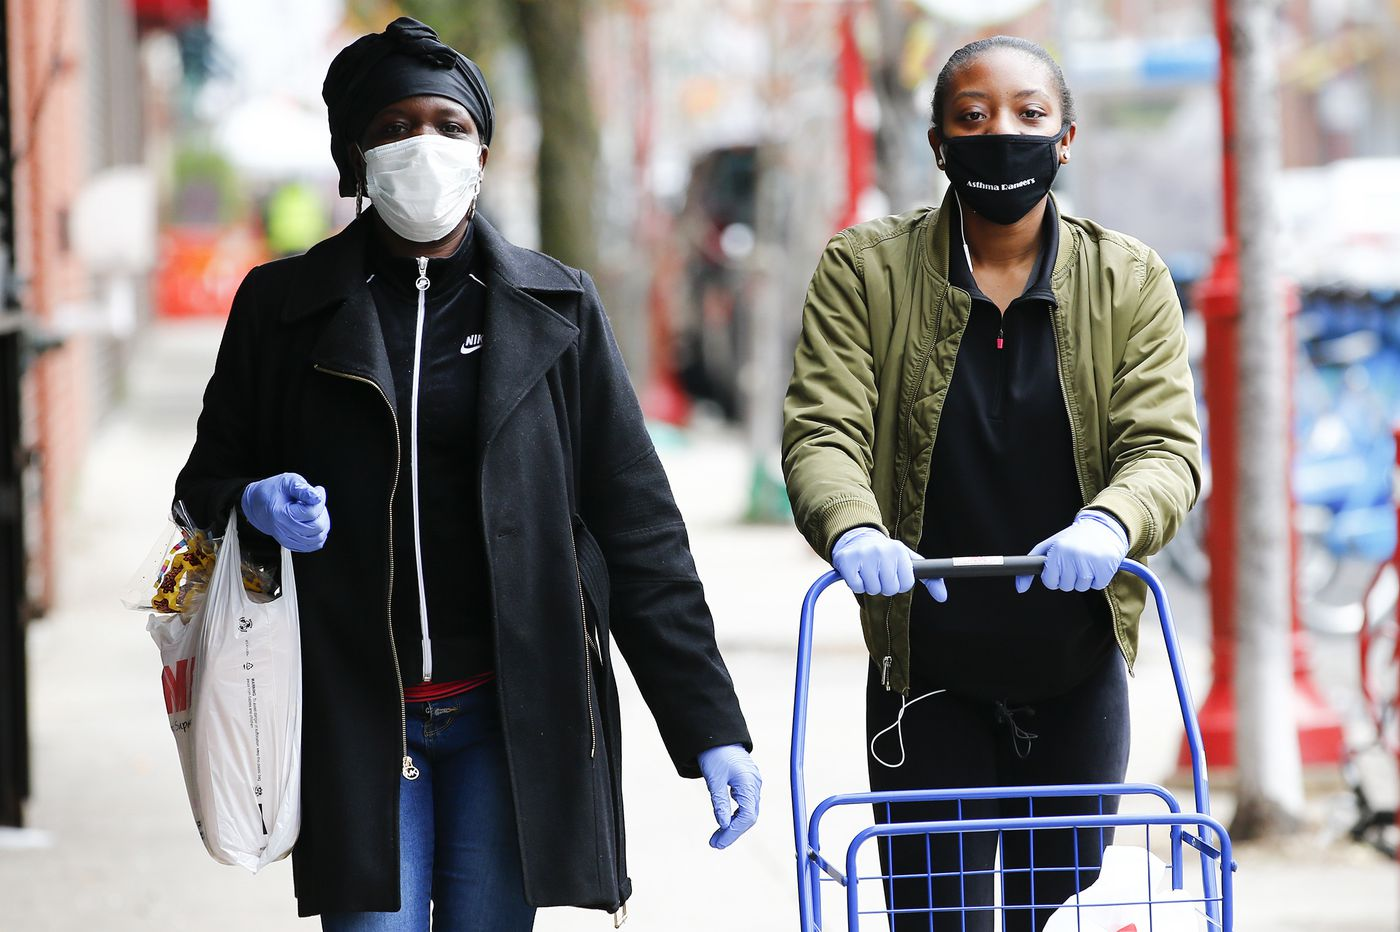 Should you wear a mask in public? The narrative is shifting.